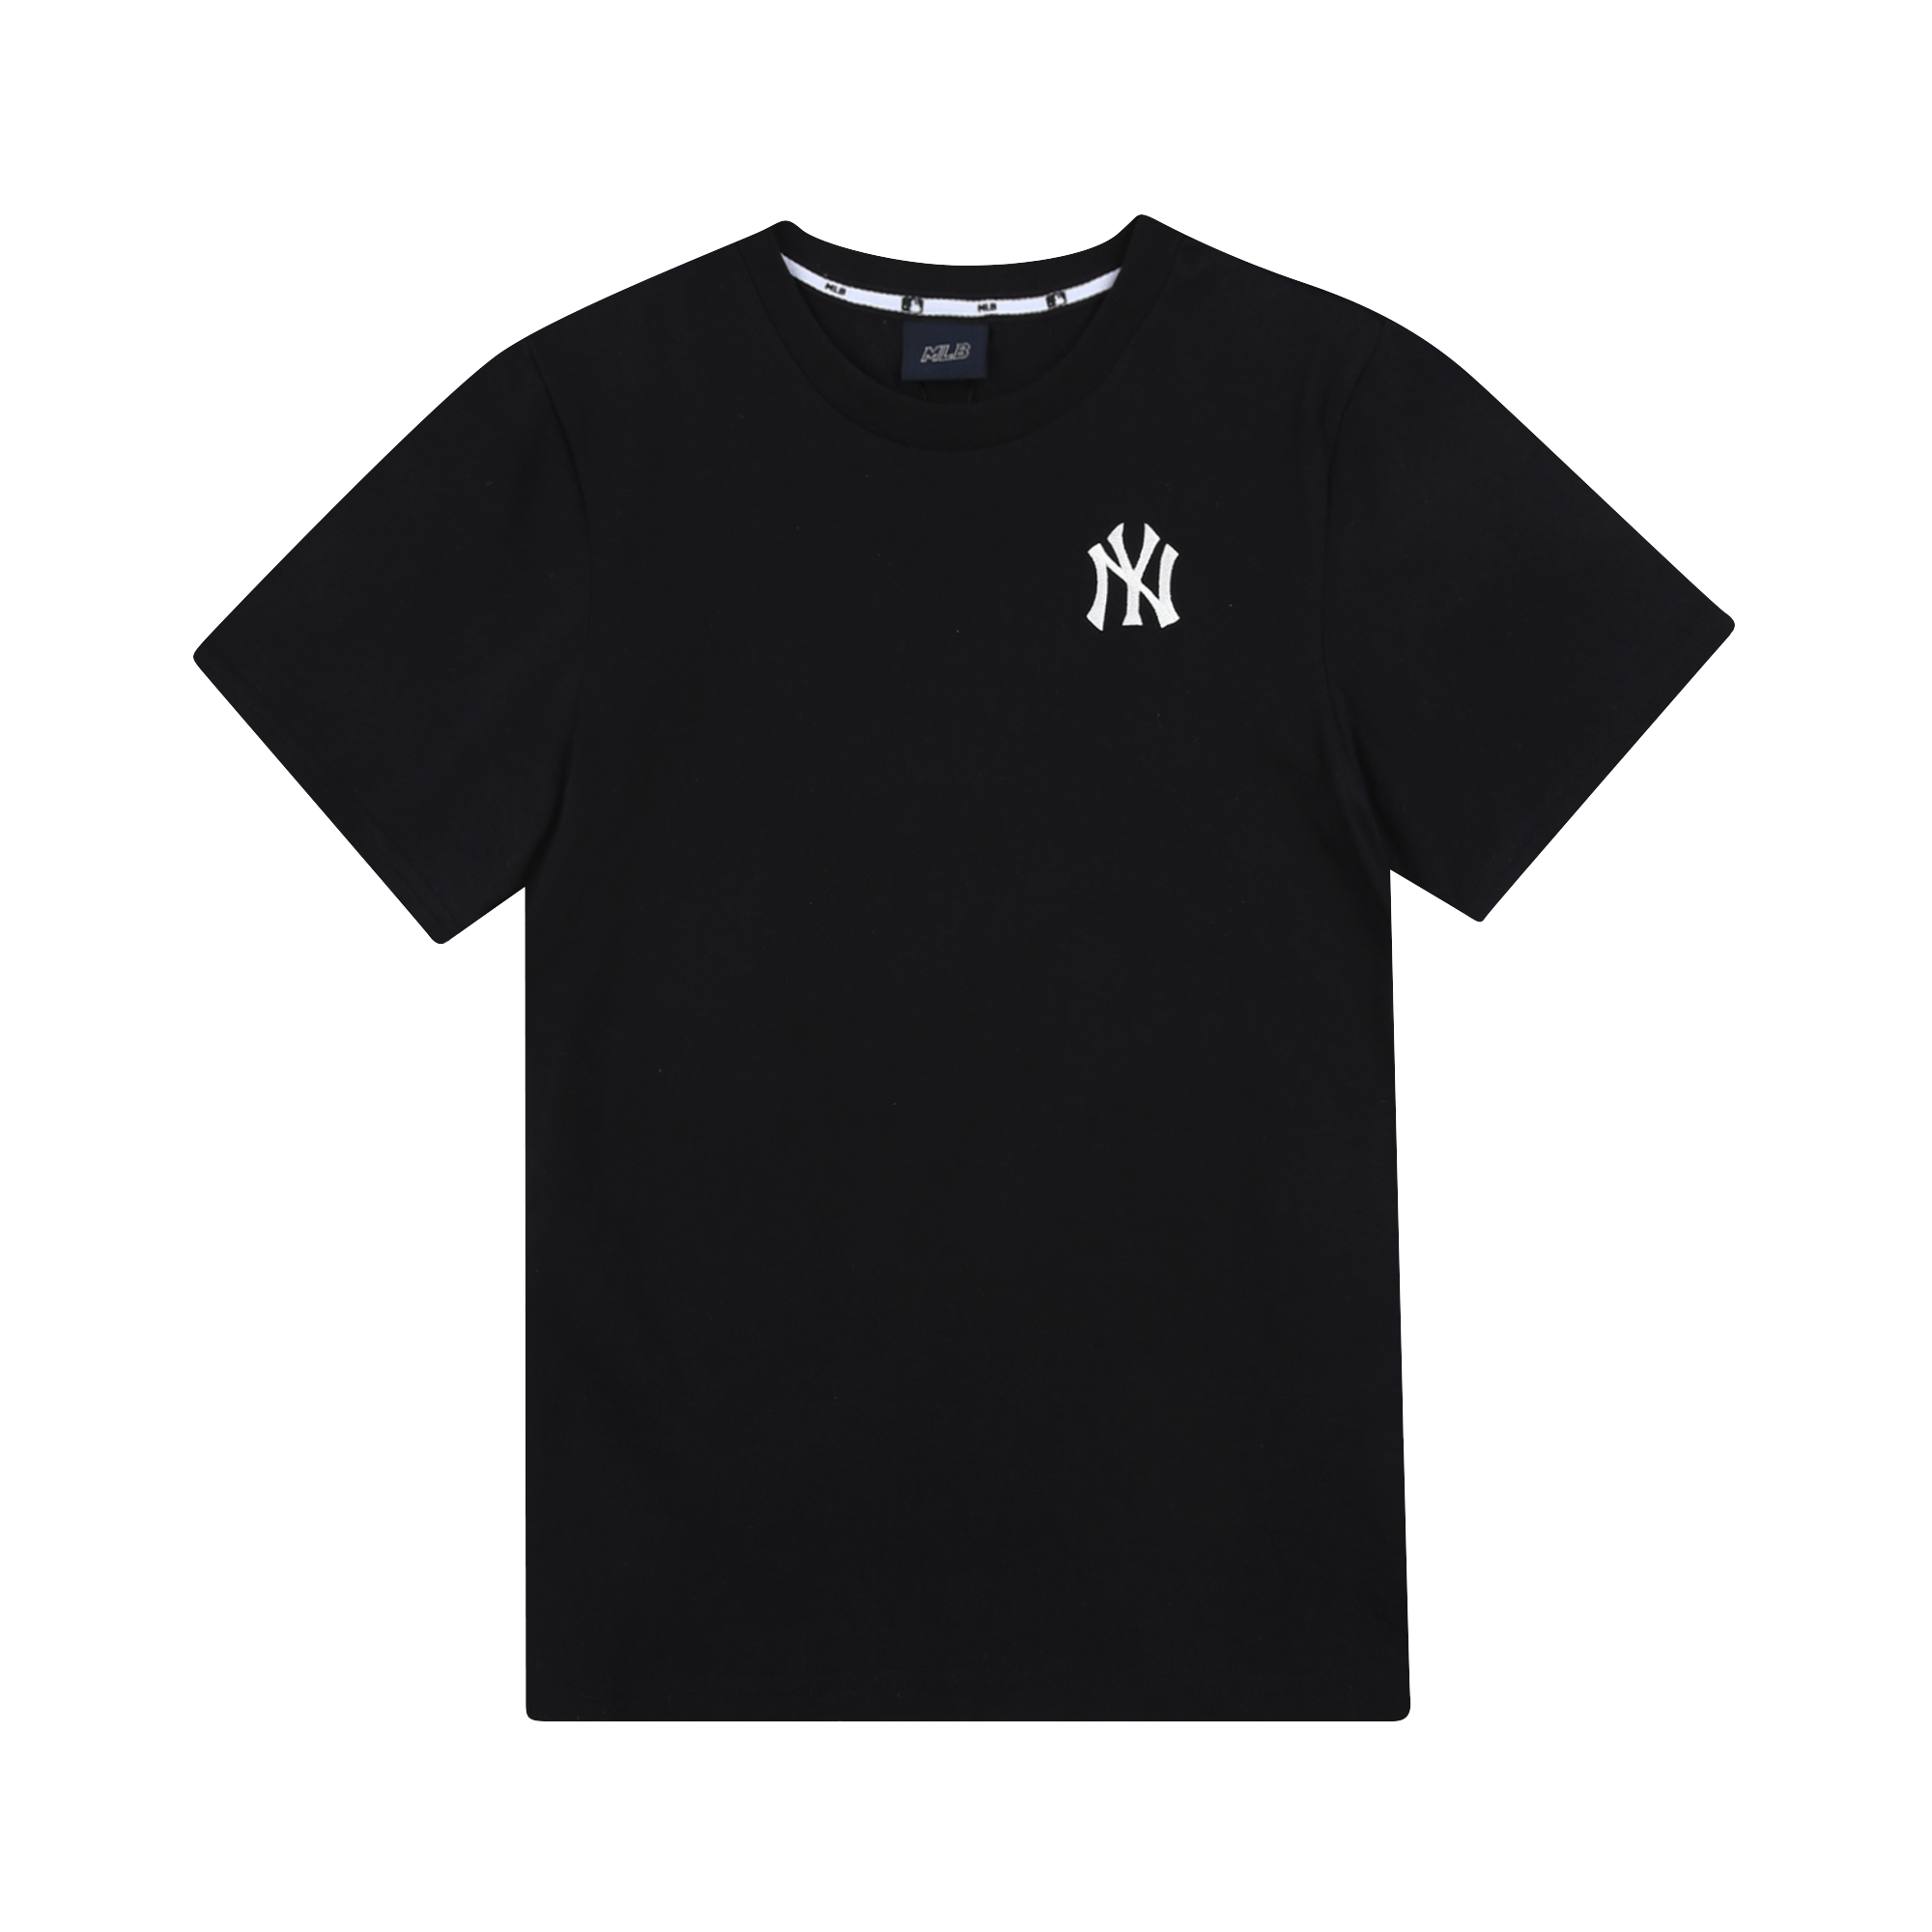 NEW YORK YANKEES BACK BIG LOGO SHORT SLEEVED T-SHIRT